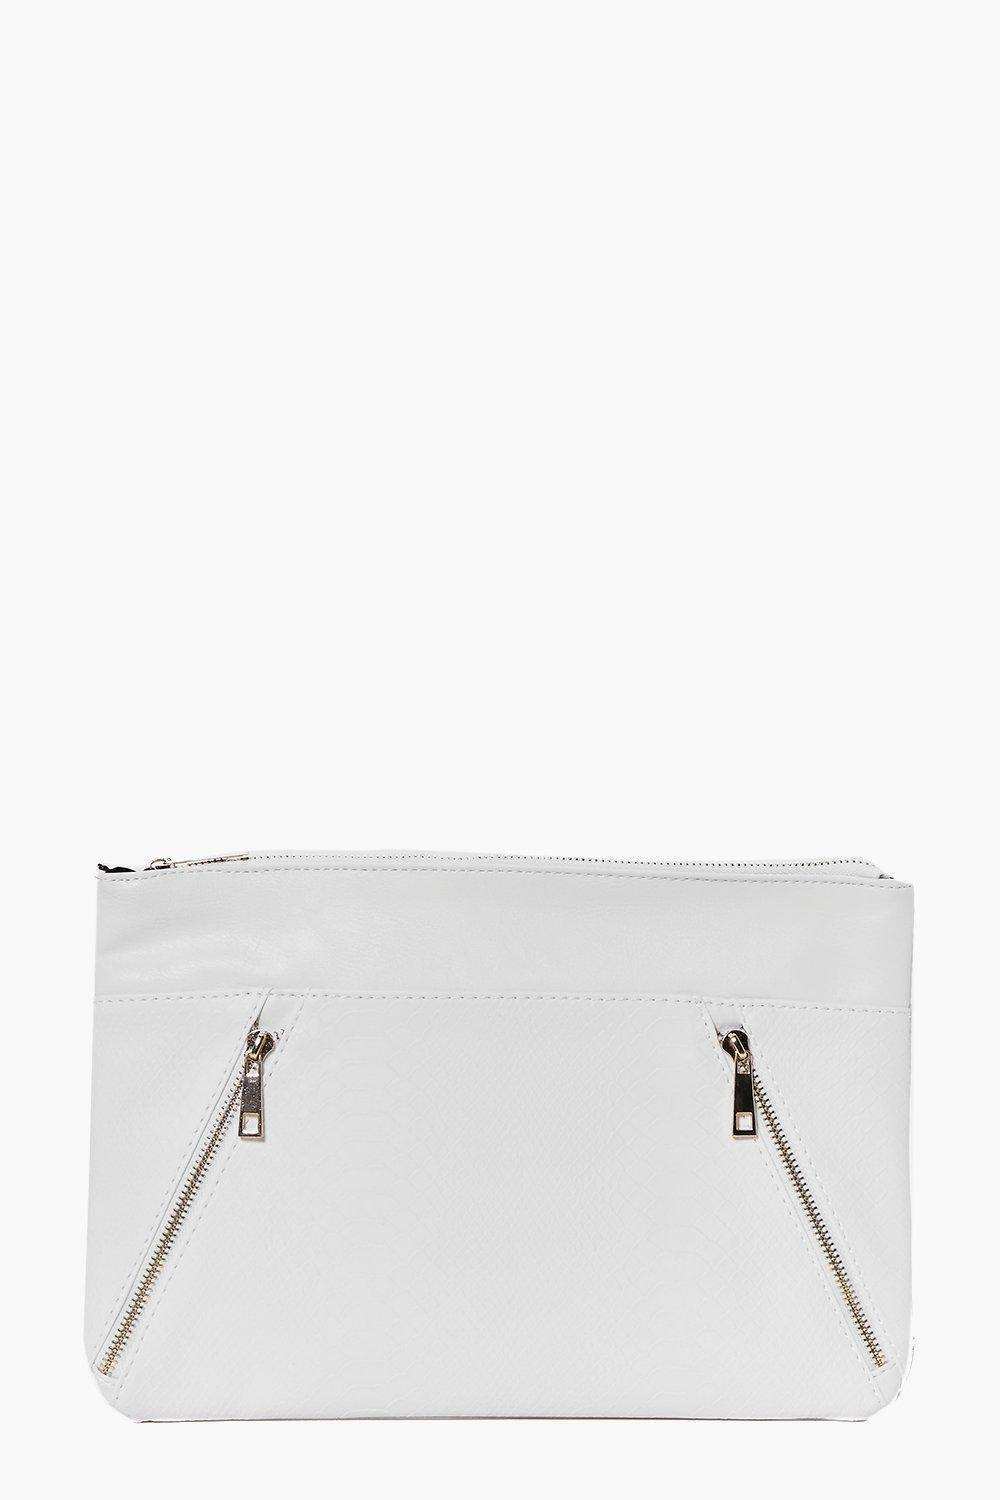 Zip Detail Contrast Panel Clutch Bag White - predominant colour: white; occasions: evening; type of pattern: standard; style: clutch; length: hand carry; size: standard; material: faux leather; pattern: plain; finish: plain; season: a/w 2016; wardrobe: event